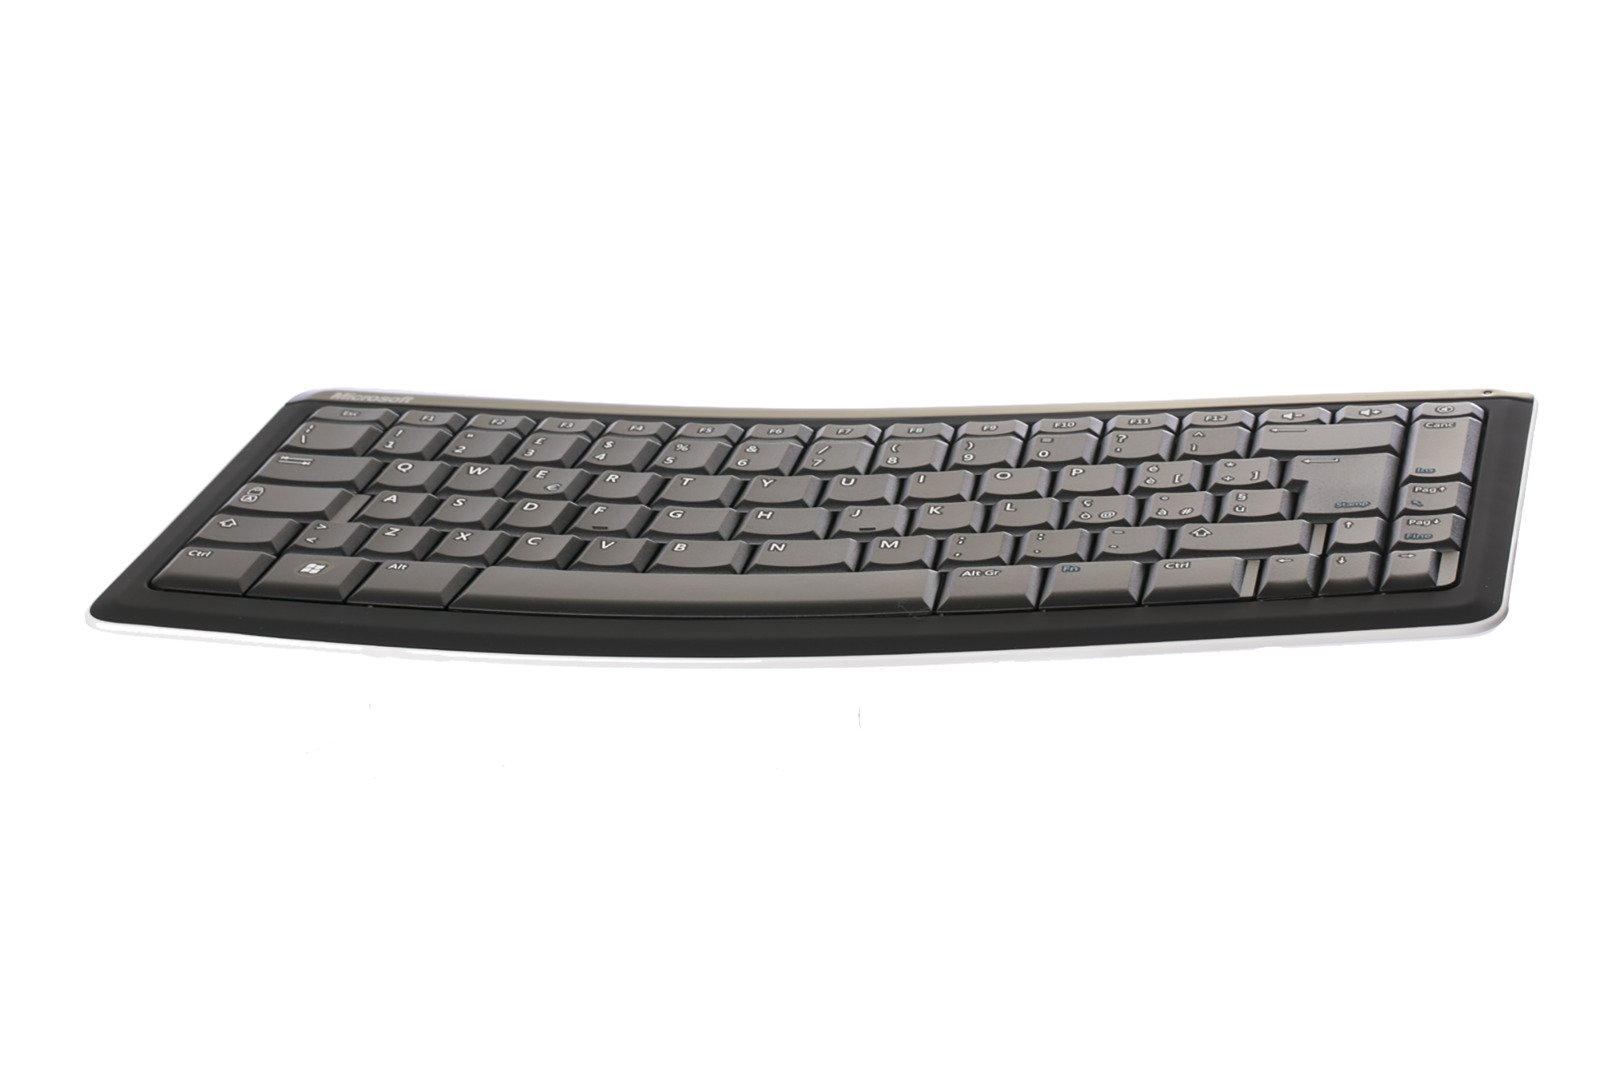 Old Fashioned Microsoft Wired Keyboard 600 Driver Image - Everything ...